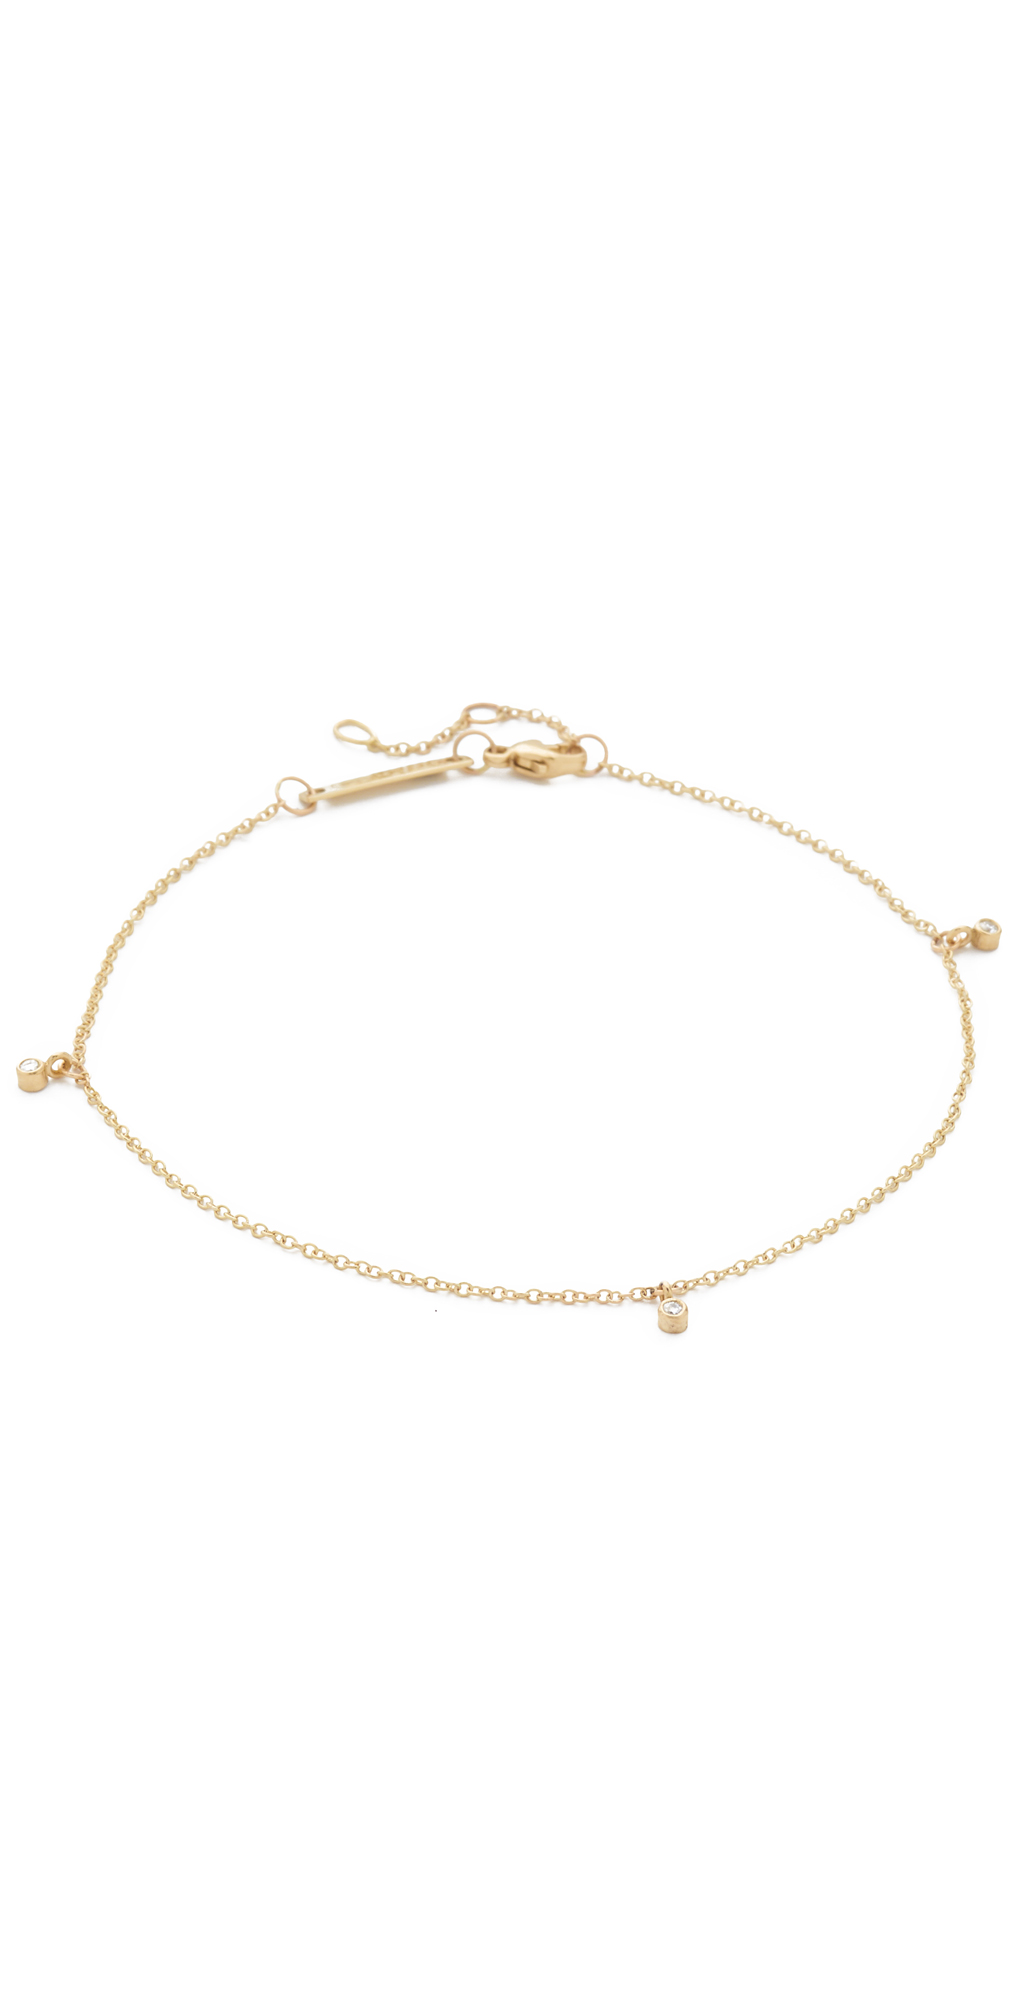 14k Gold Dangling Diamond Anklet Zoe Chicco